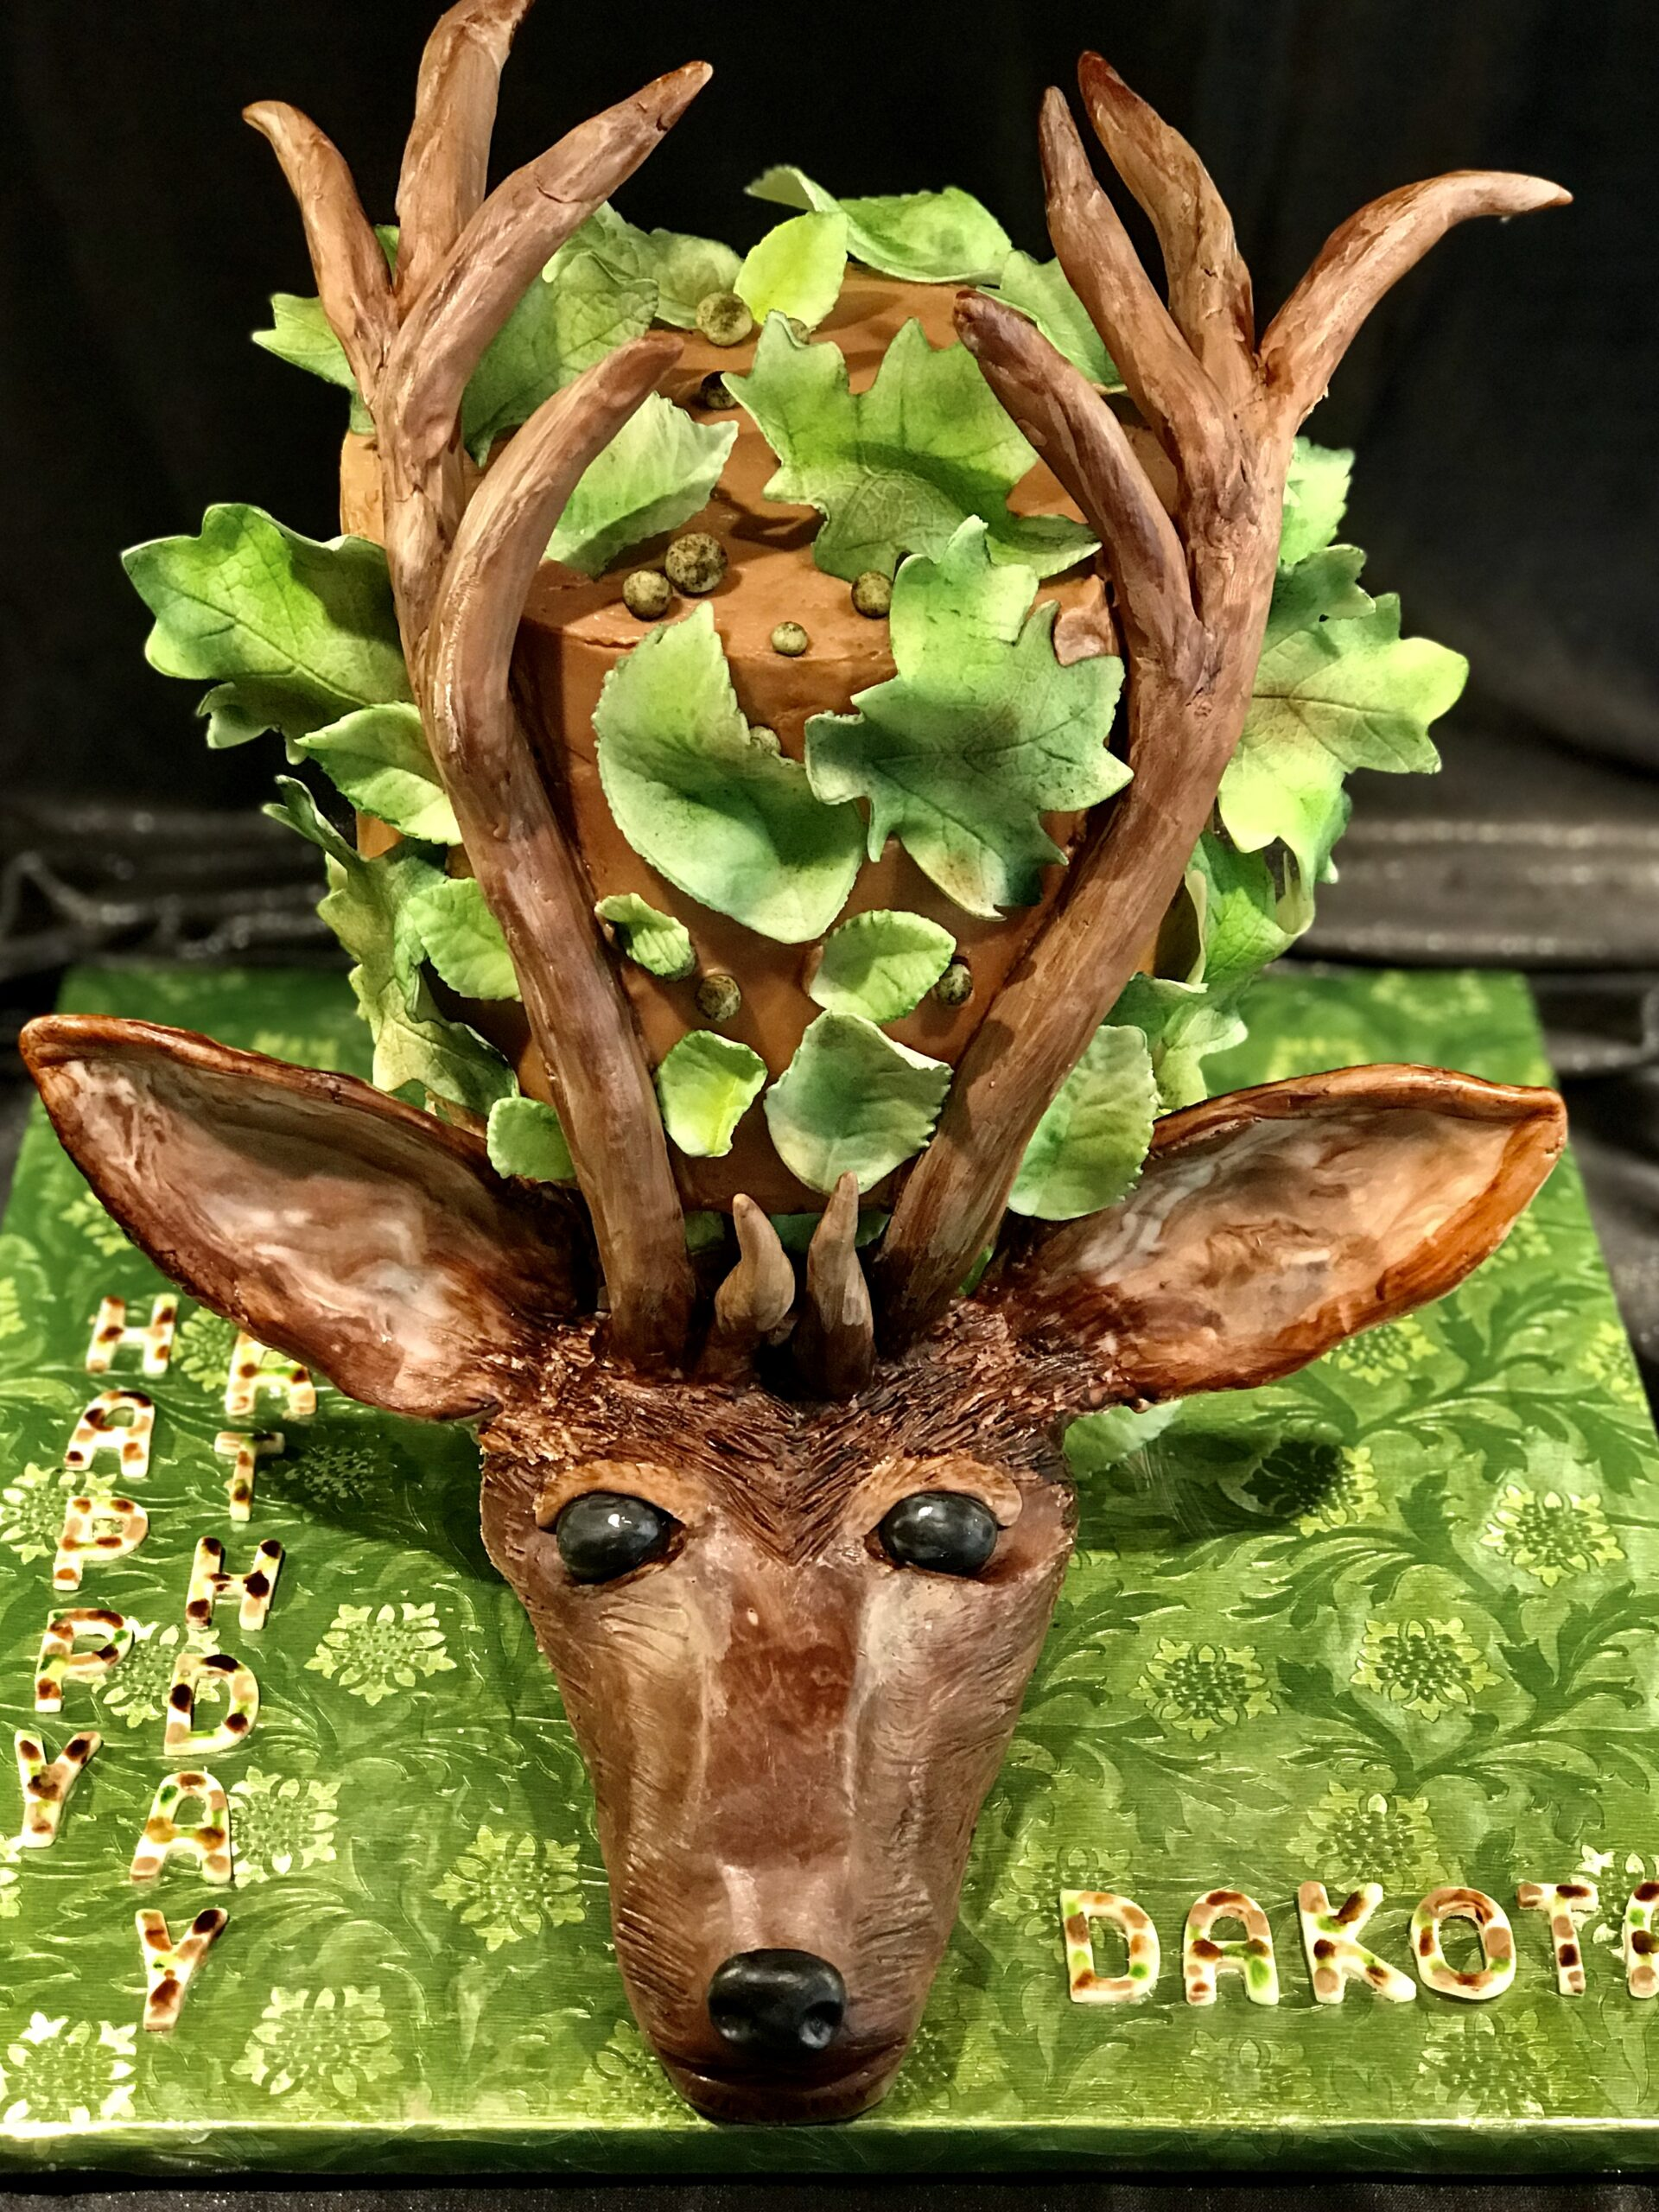 Boy's birthday cake with a 3-D elk's head made out of chocolate